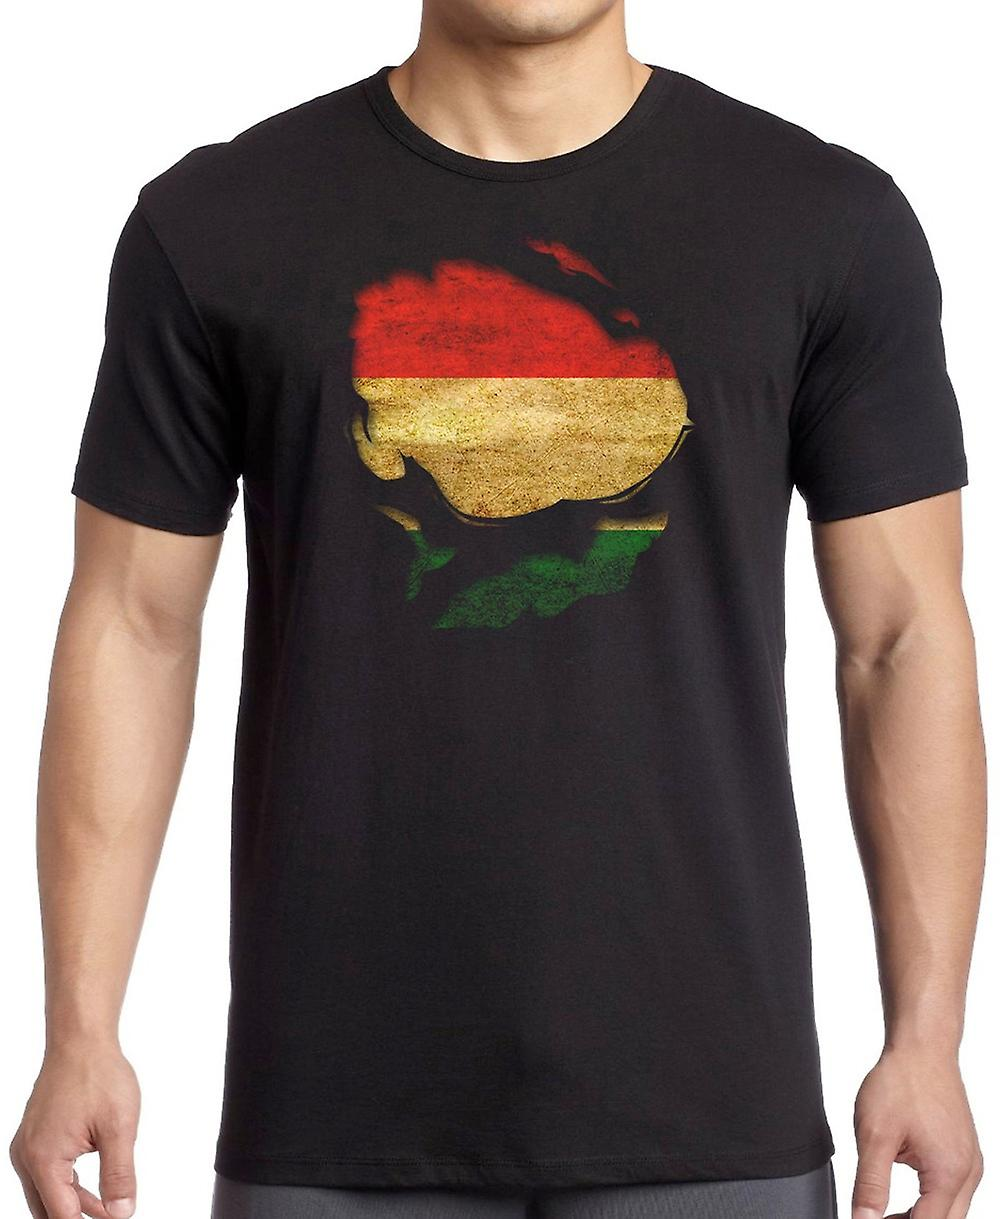 Central Africa Republic Ripped Effect Under Shirt T Shirt